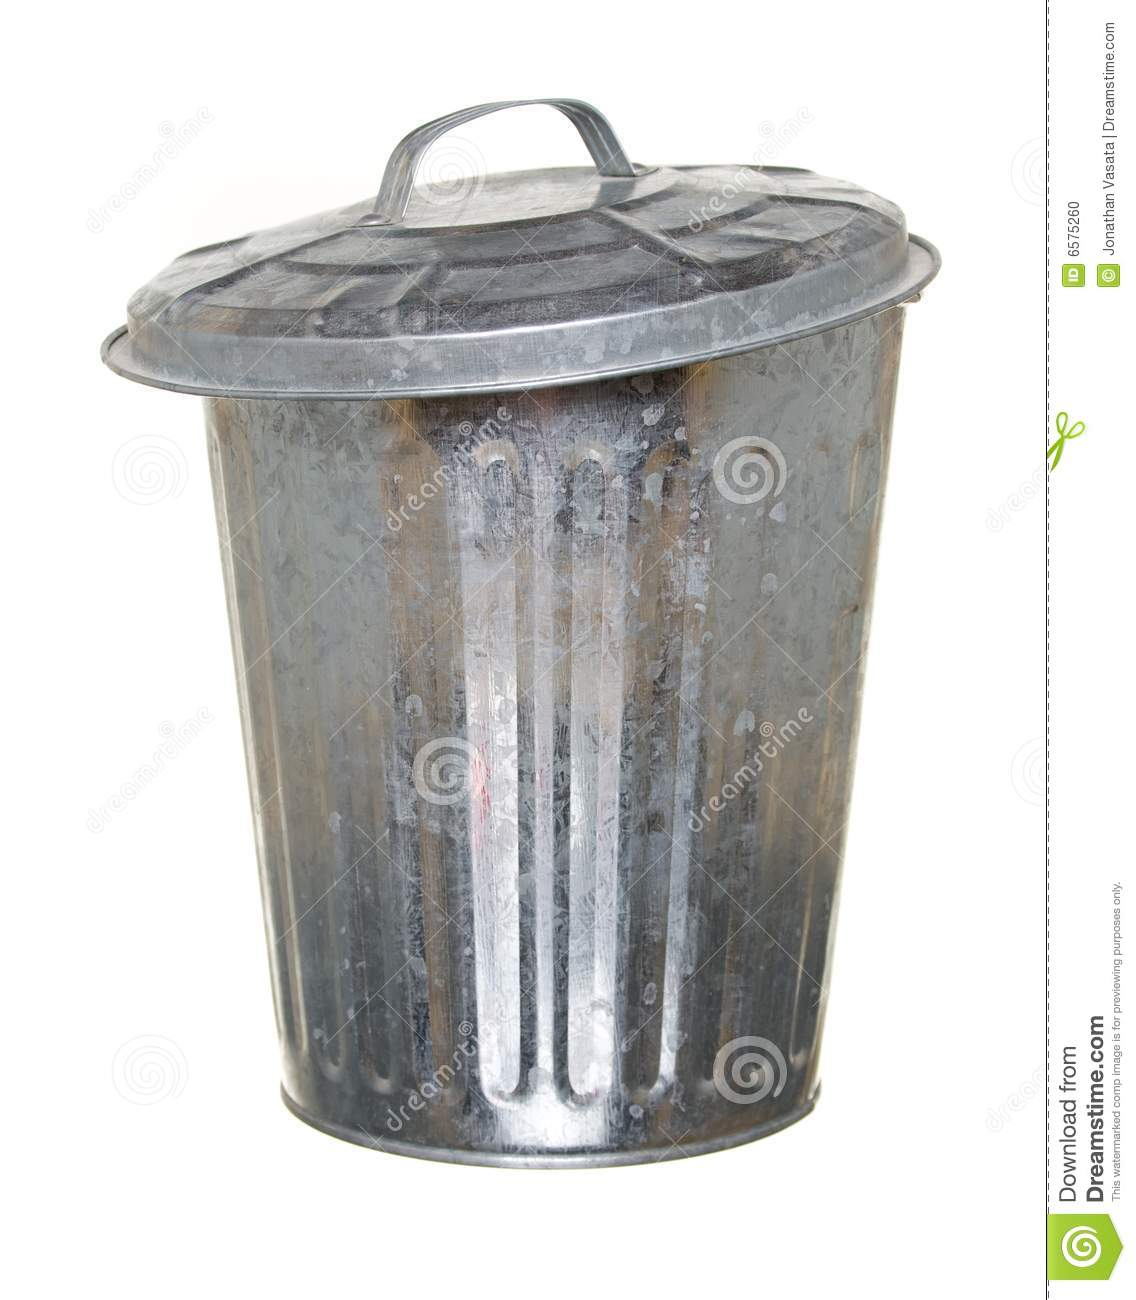 Aluminium Garbage Cans : Trash can lid ajar forward stock photo image